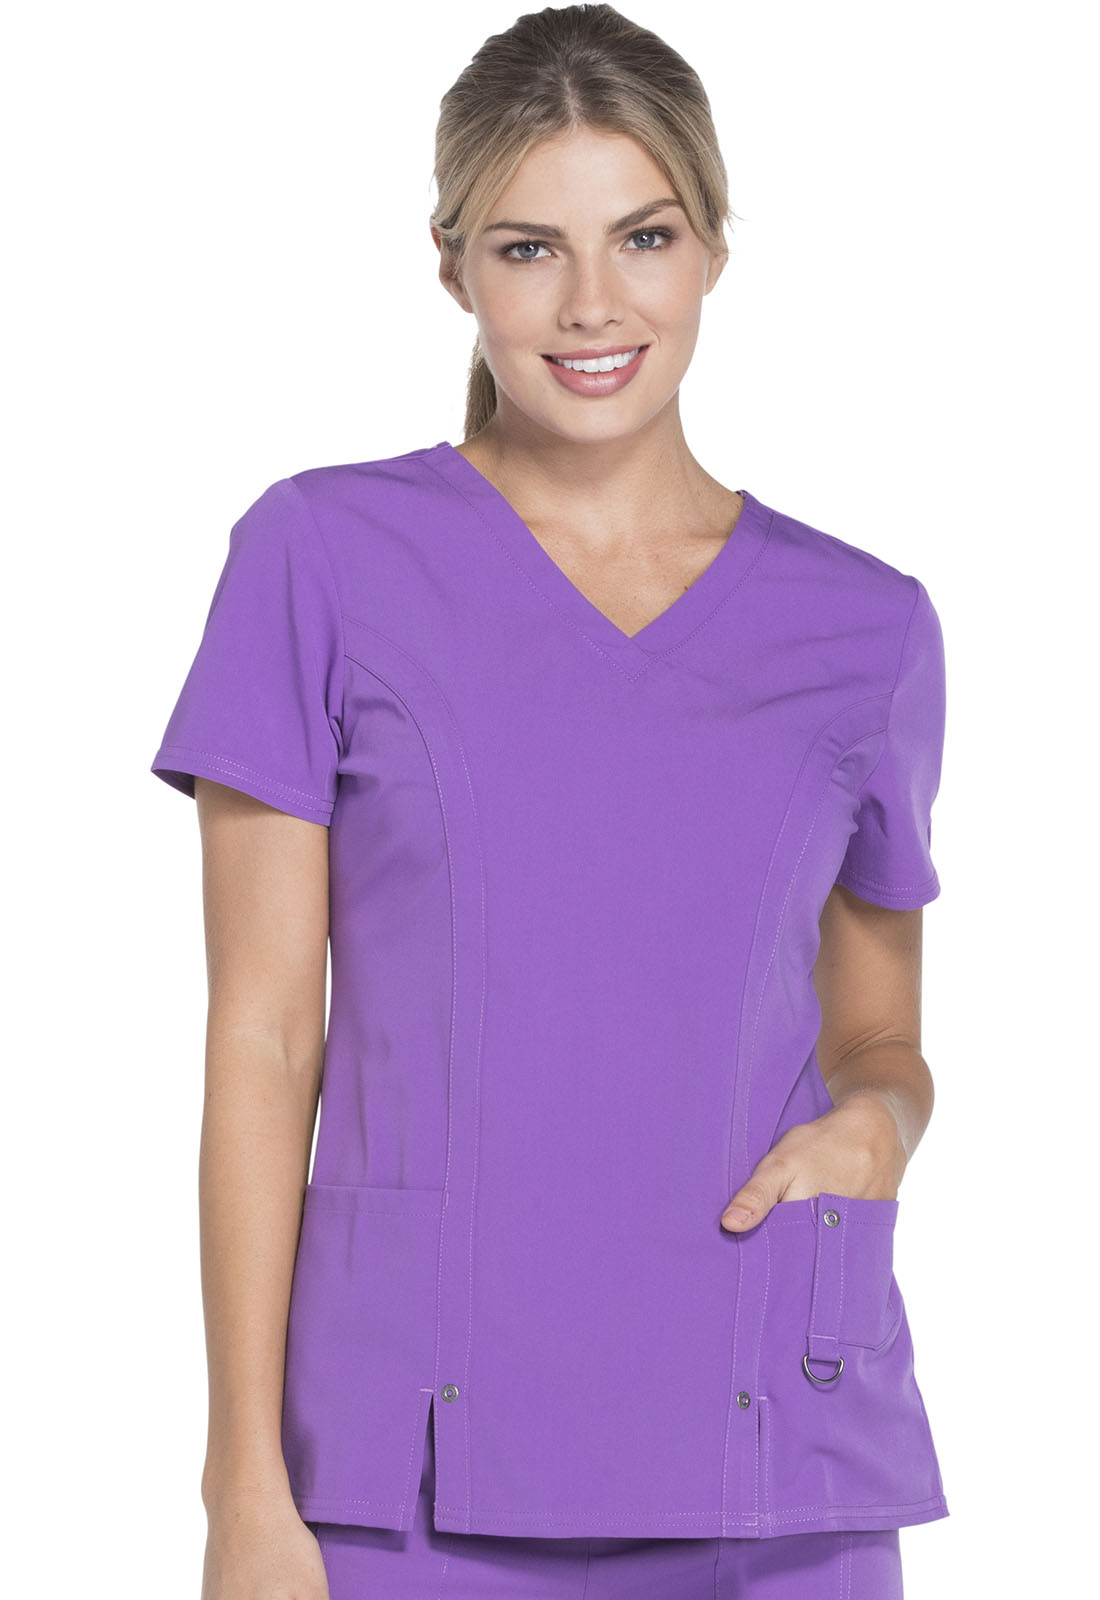 c3b1d298a5f Dickies Xtreme Stretch V-Neck Top 82851-PLCS from Professional Fashion